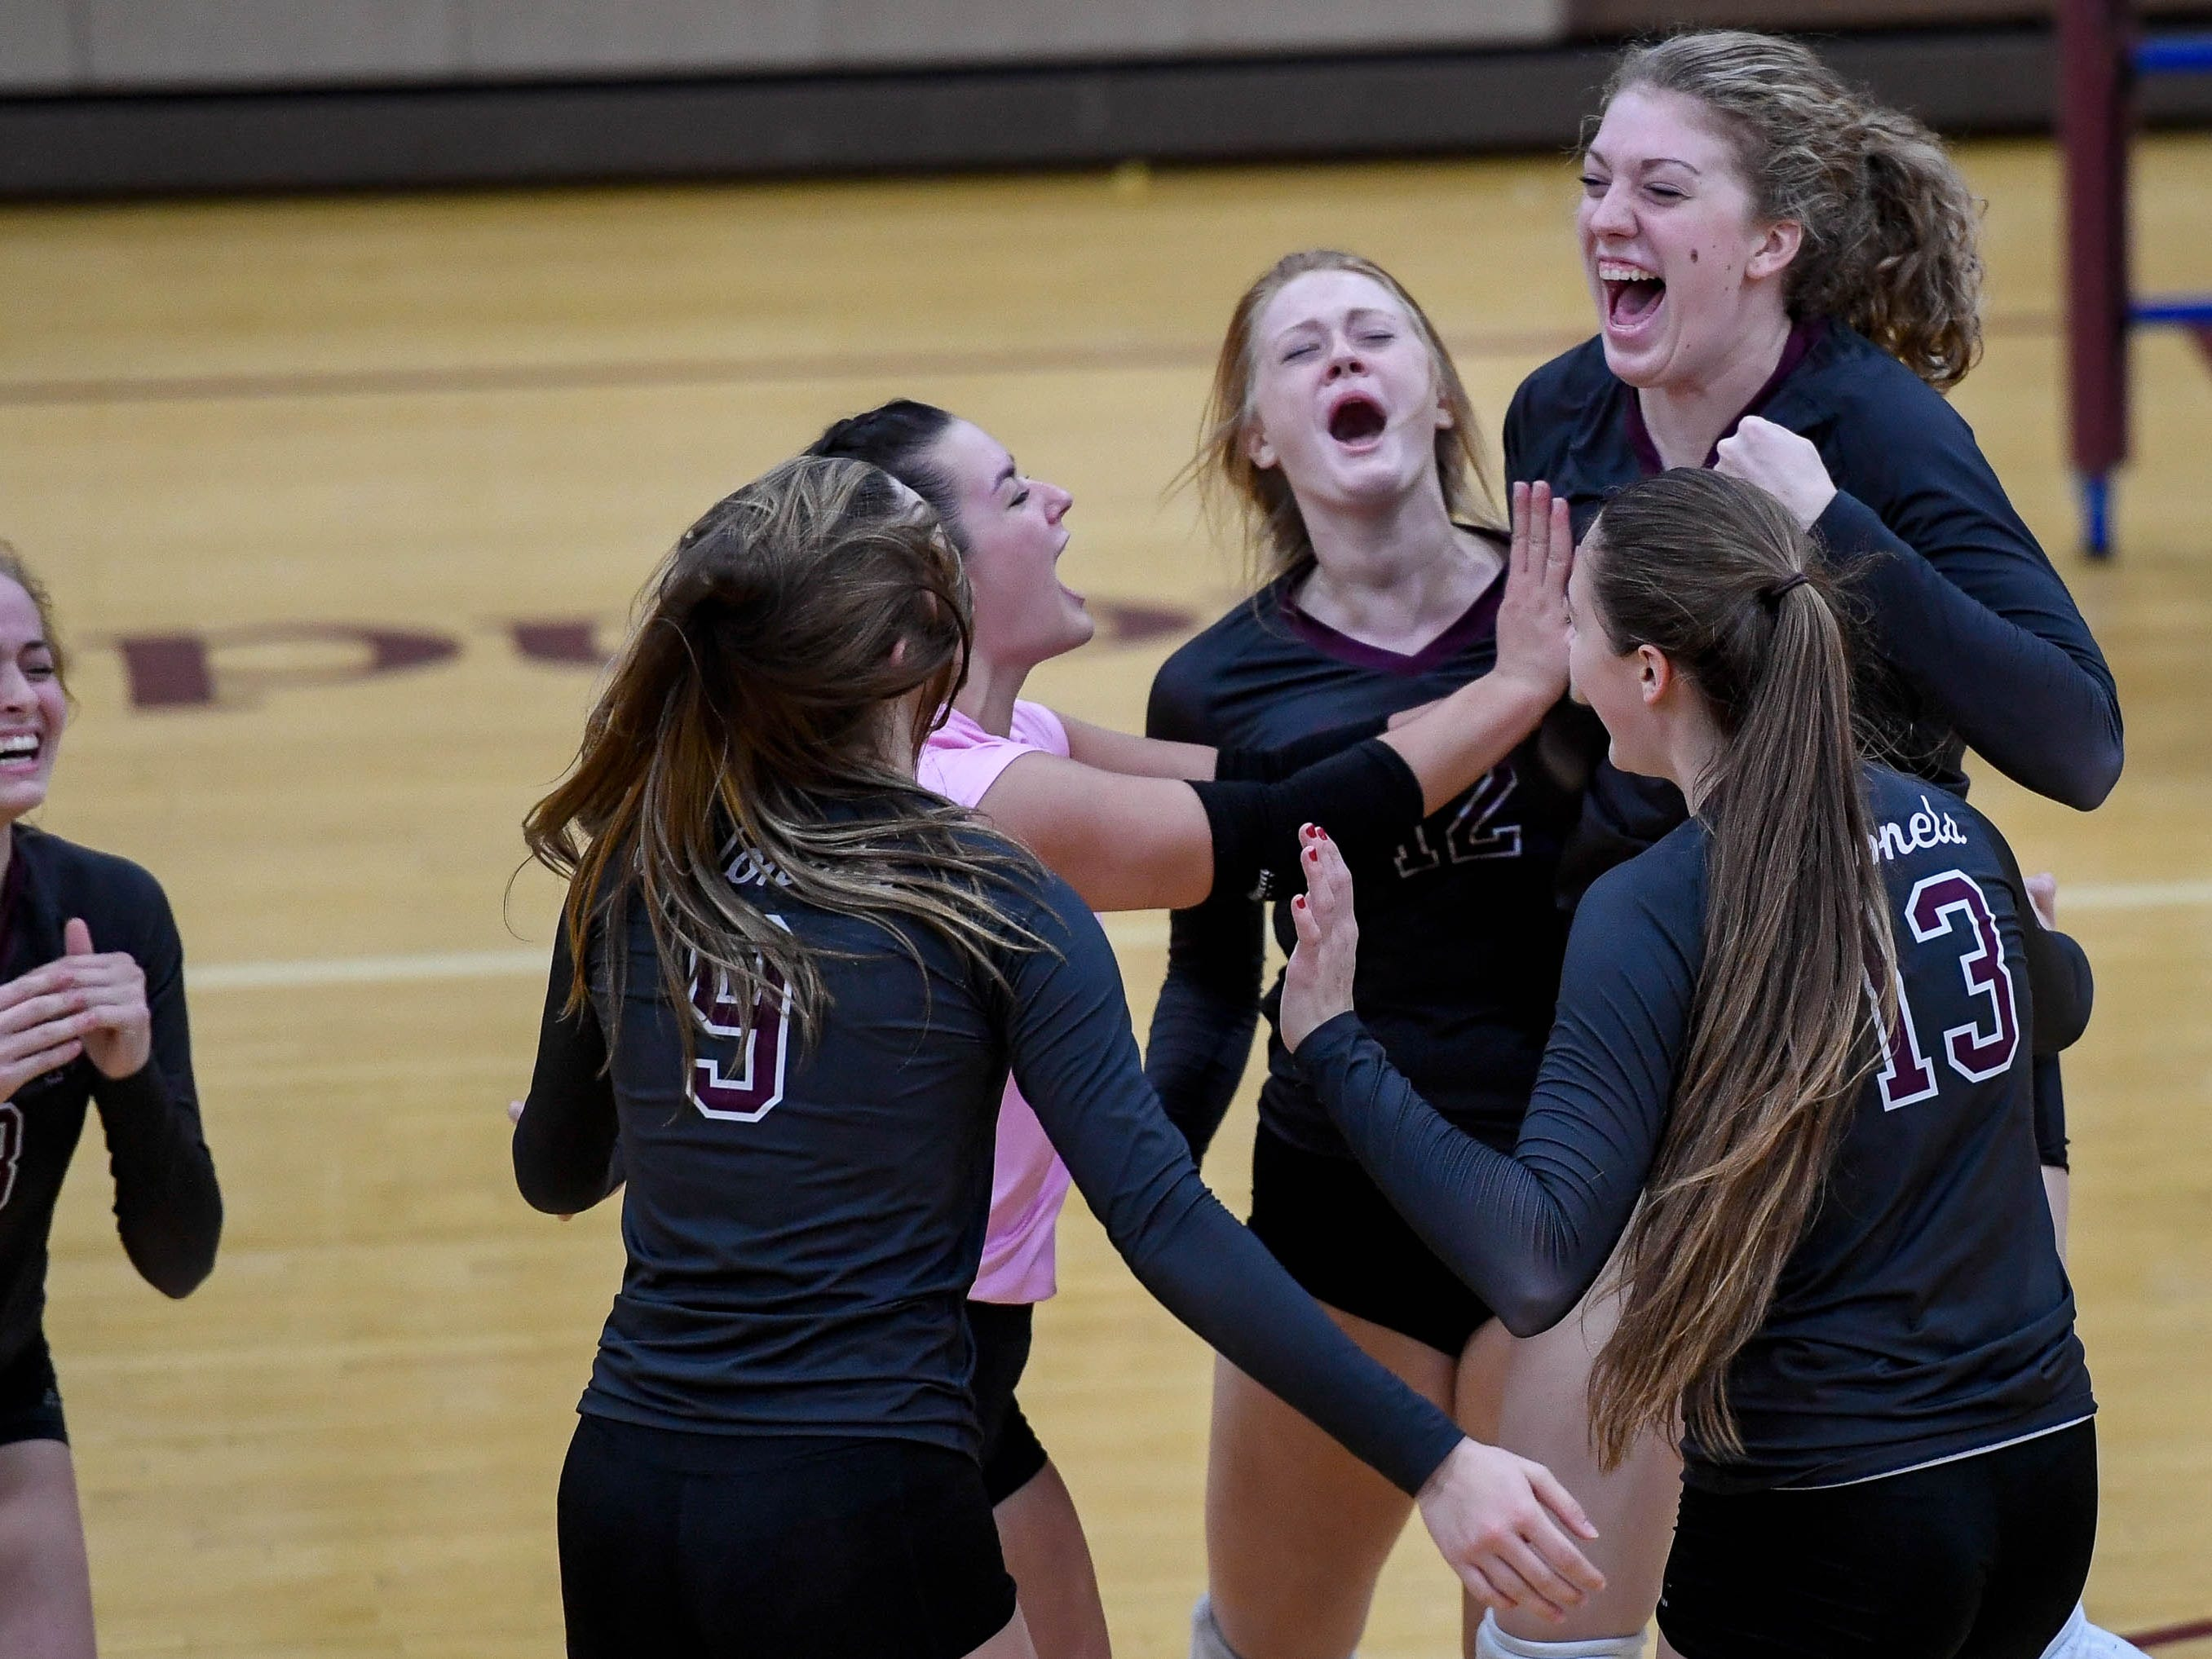 The Colonel's celebrate a point late the the third match as the Henderson County Lady Colonels play the Caldwell County Lady Tigers at Colonel Gym Thursday, October  4, 2018.